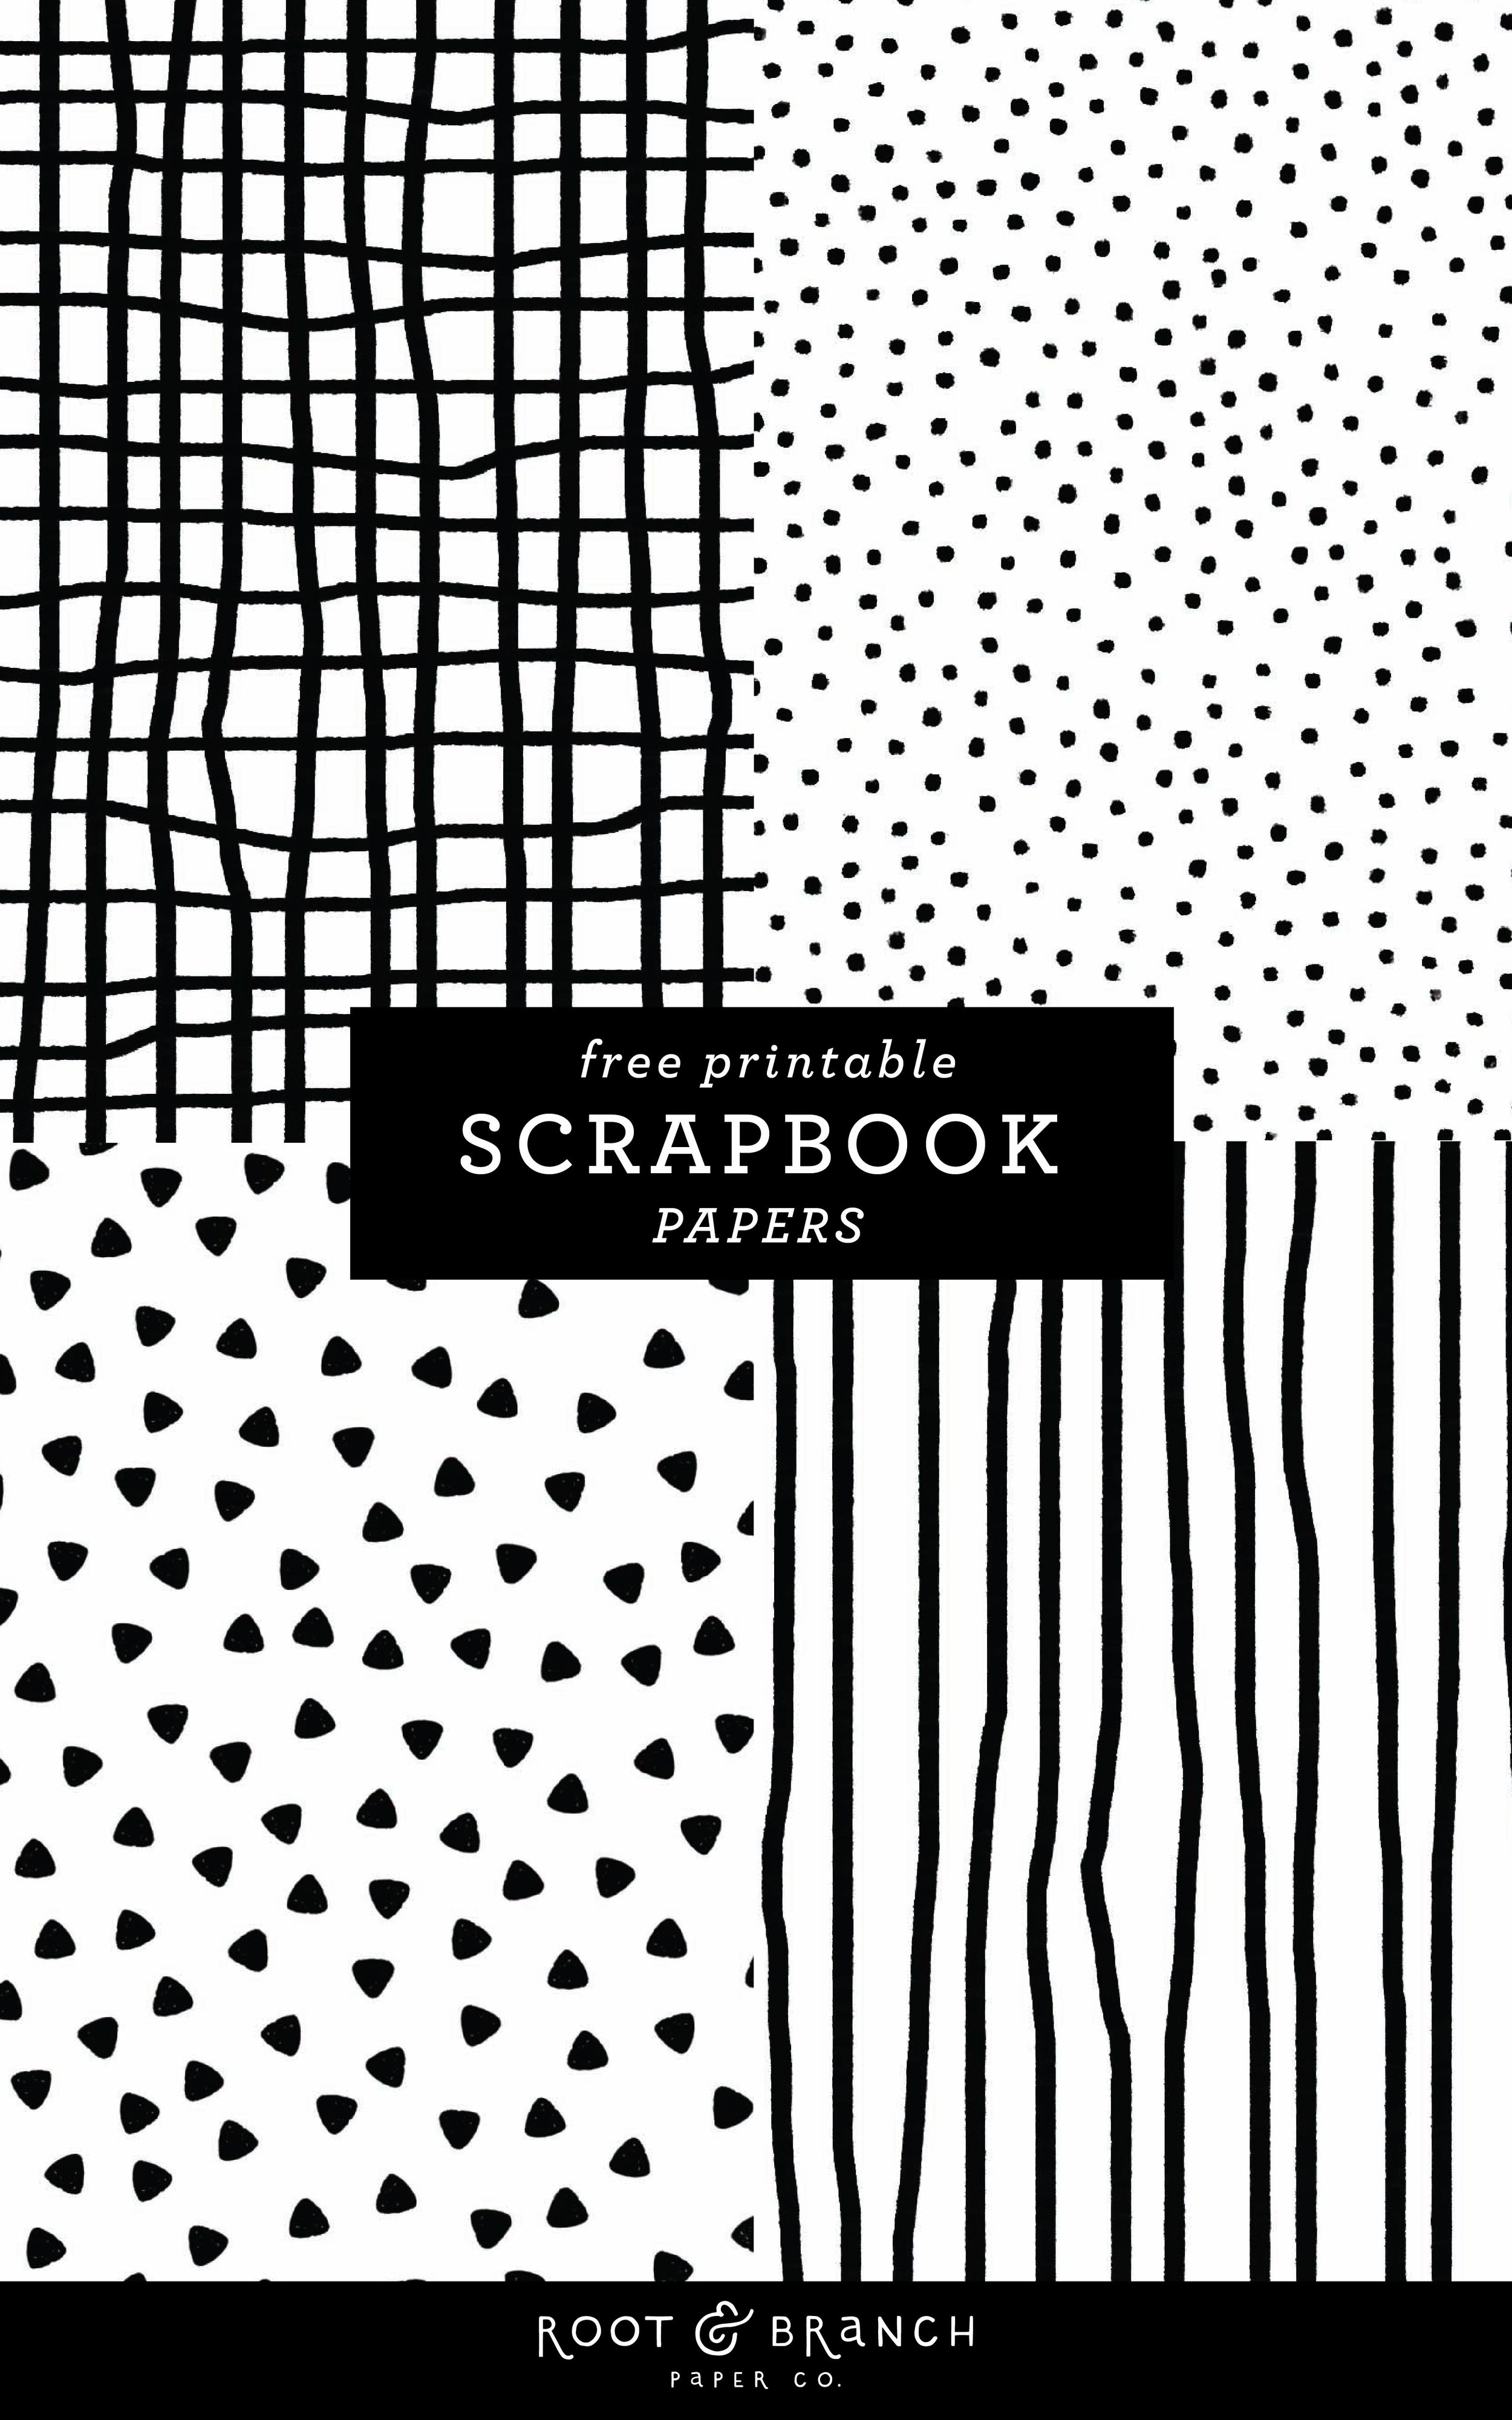 Free Printable Scrapbook Papers: Black and White Prints